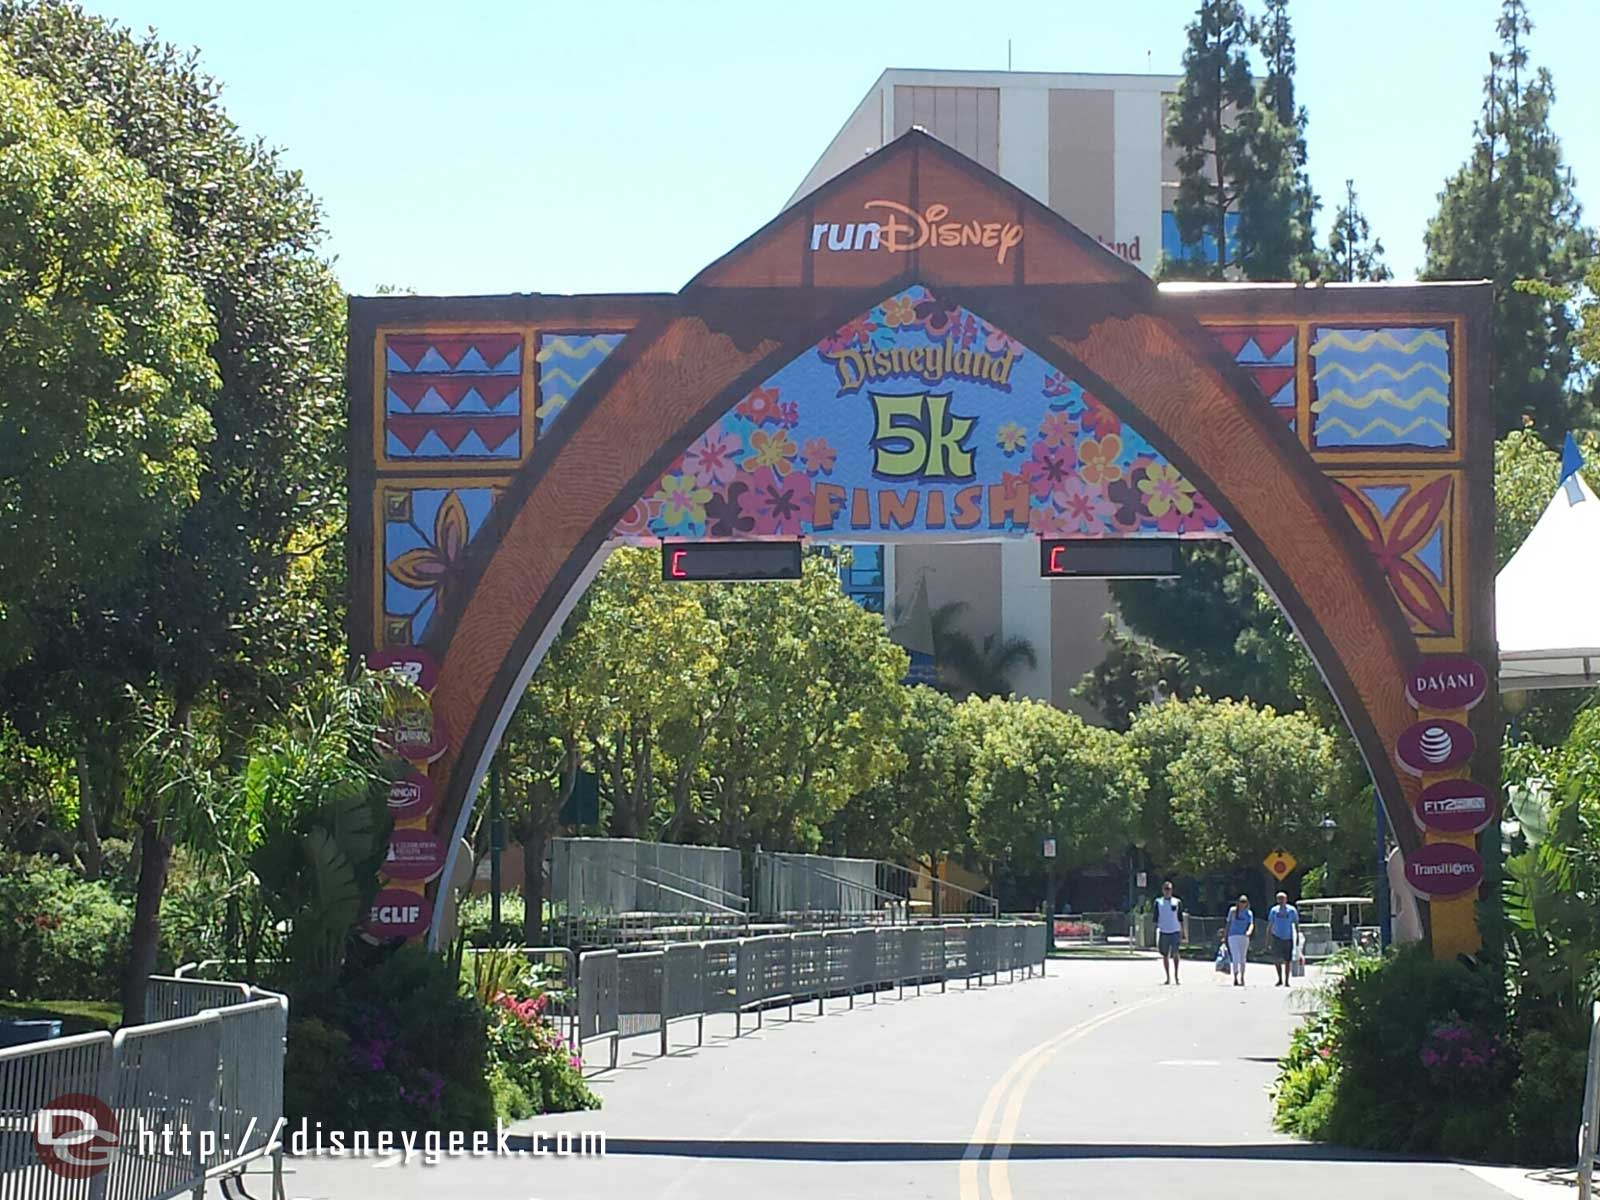 It is race weekend at the #Disneyland Resort with 5k, 10k & 1/2 marathons. This is the 5k finish line.